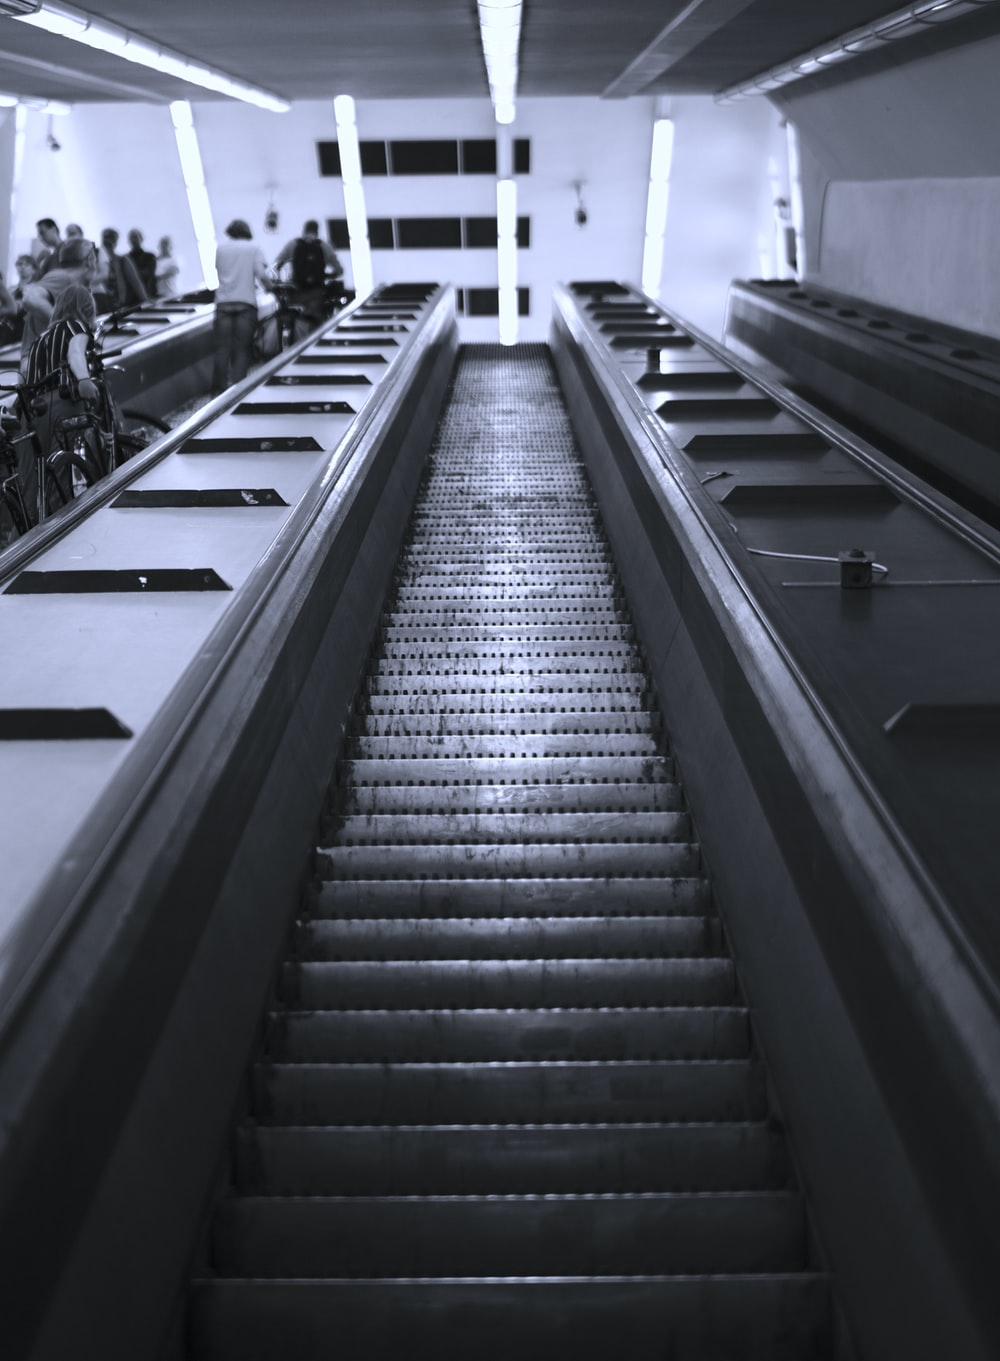 grayscale photography of people in escalator inside building